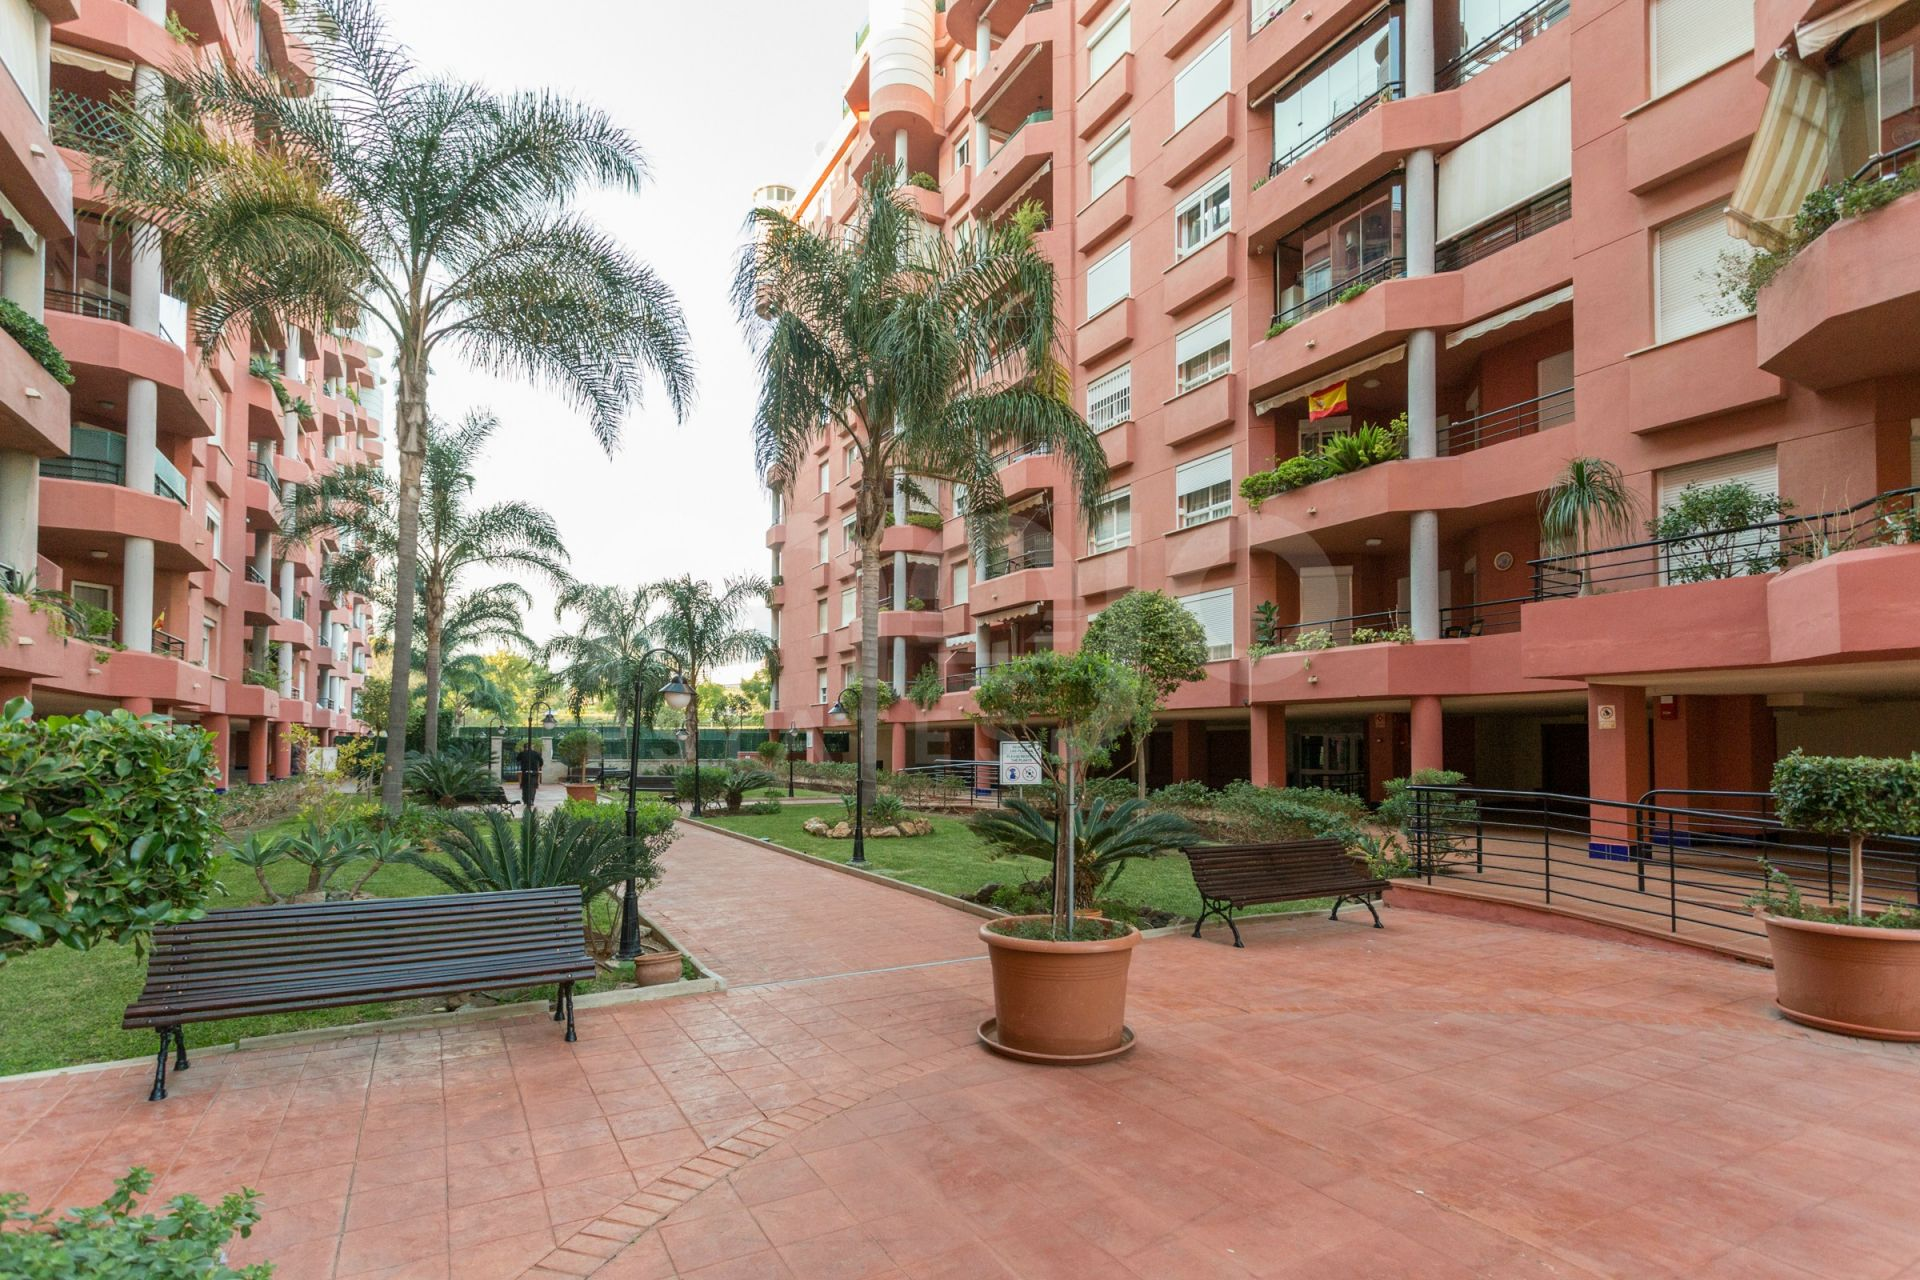 Apartment for sale in Los Boliches, Fuengirola